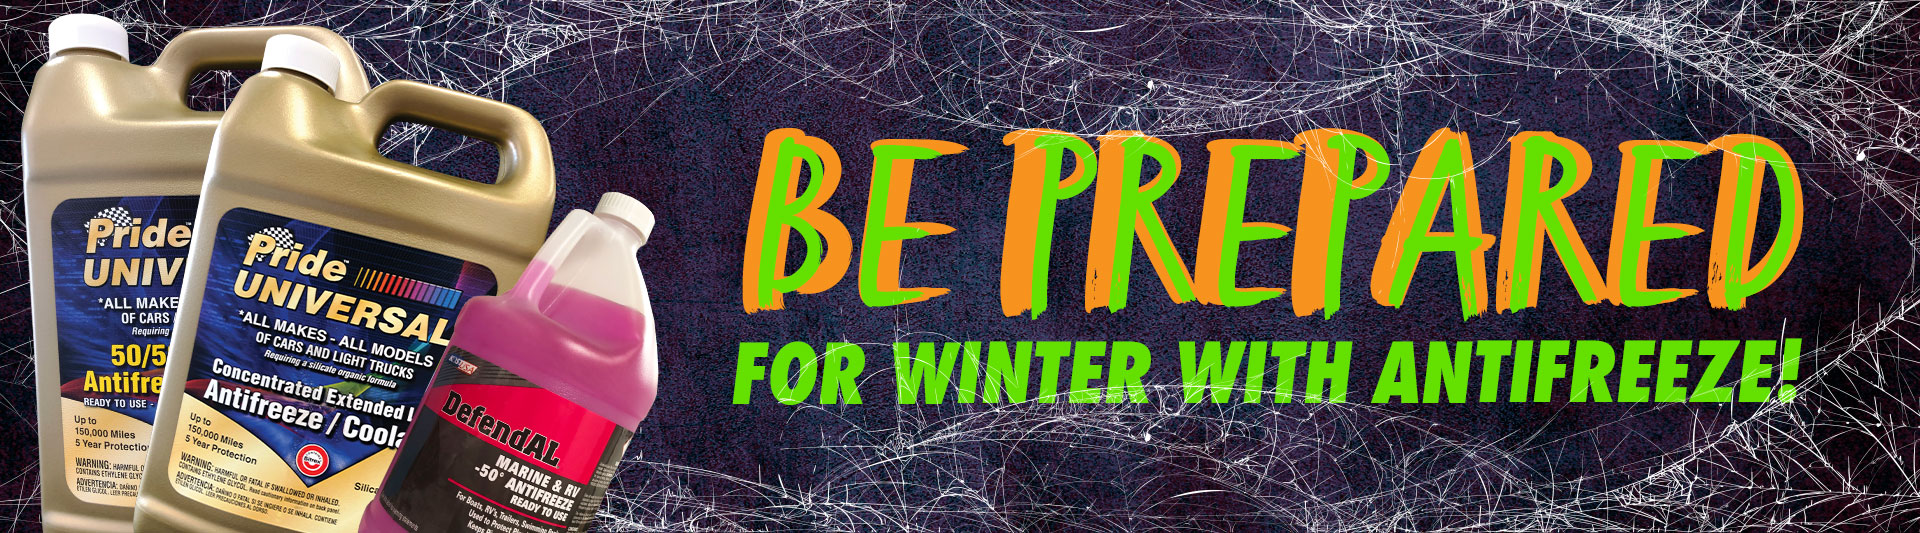 Be Prepared for winter with antifreeze